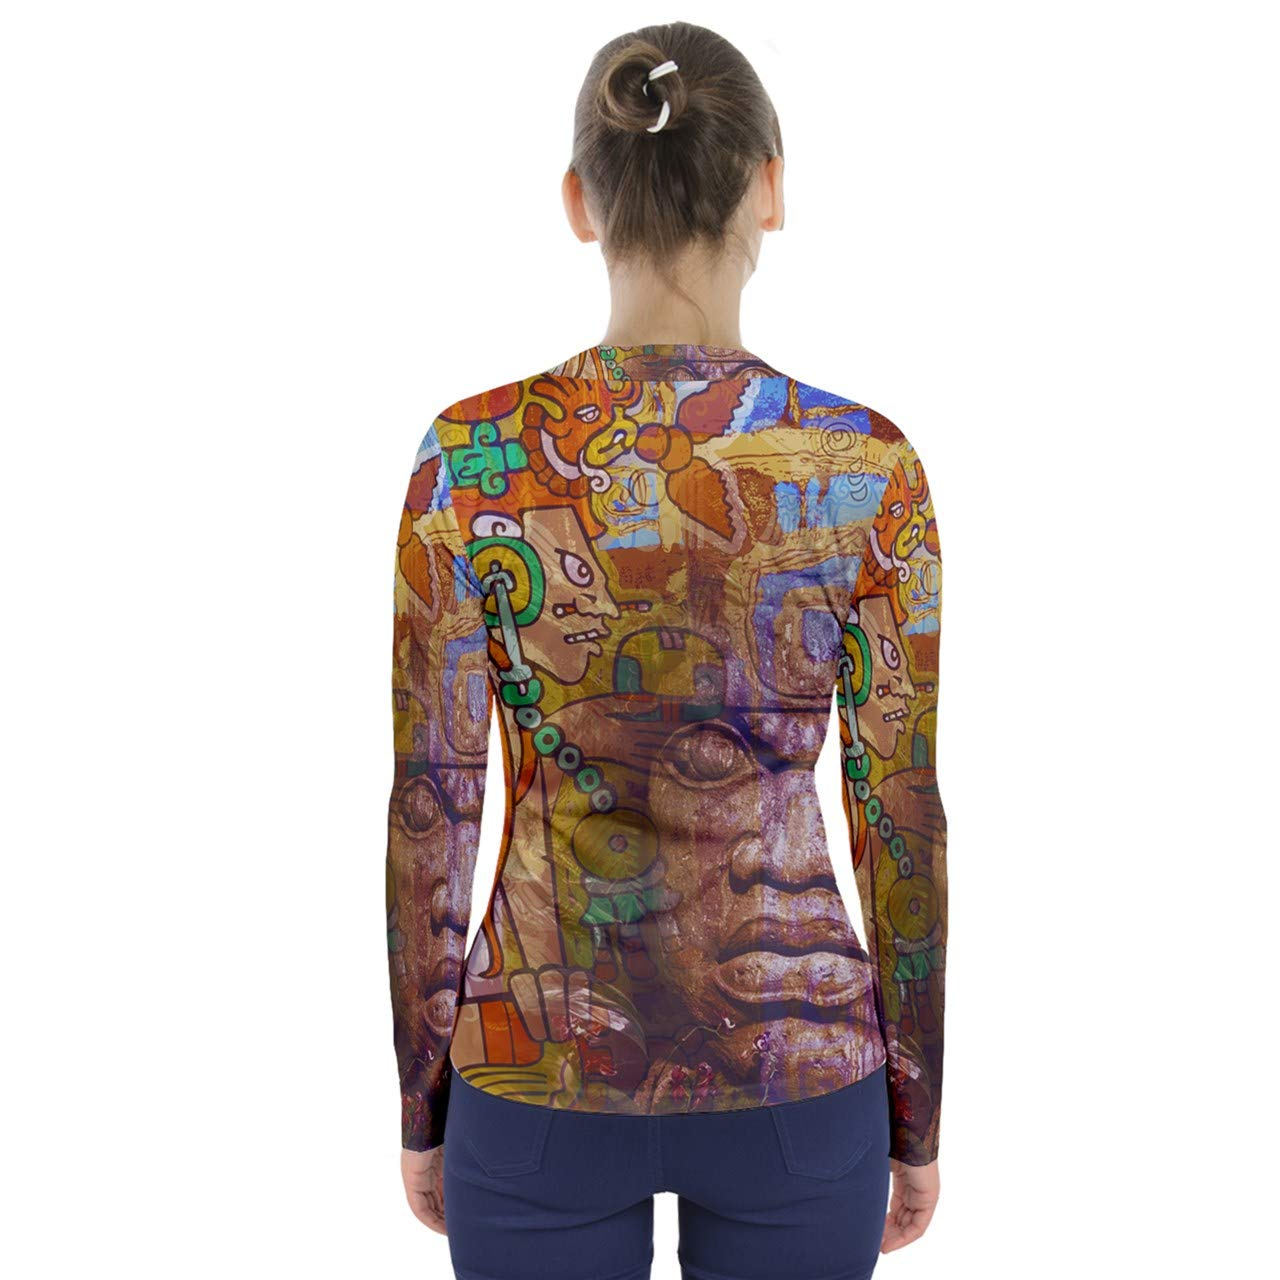 Dcustomwatch Ancient History graffity Relief Trippy Design Hip hop Full Print V-Neck Long Sleeve Top Women tees